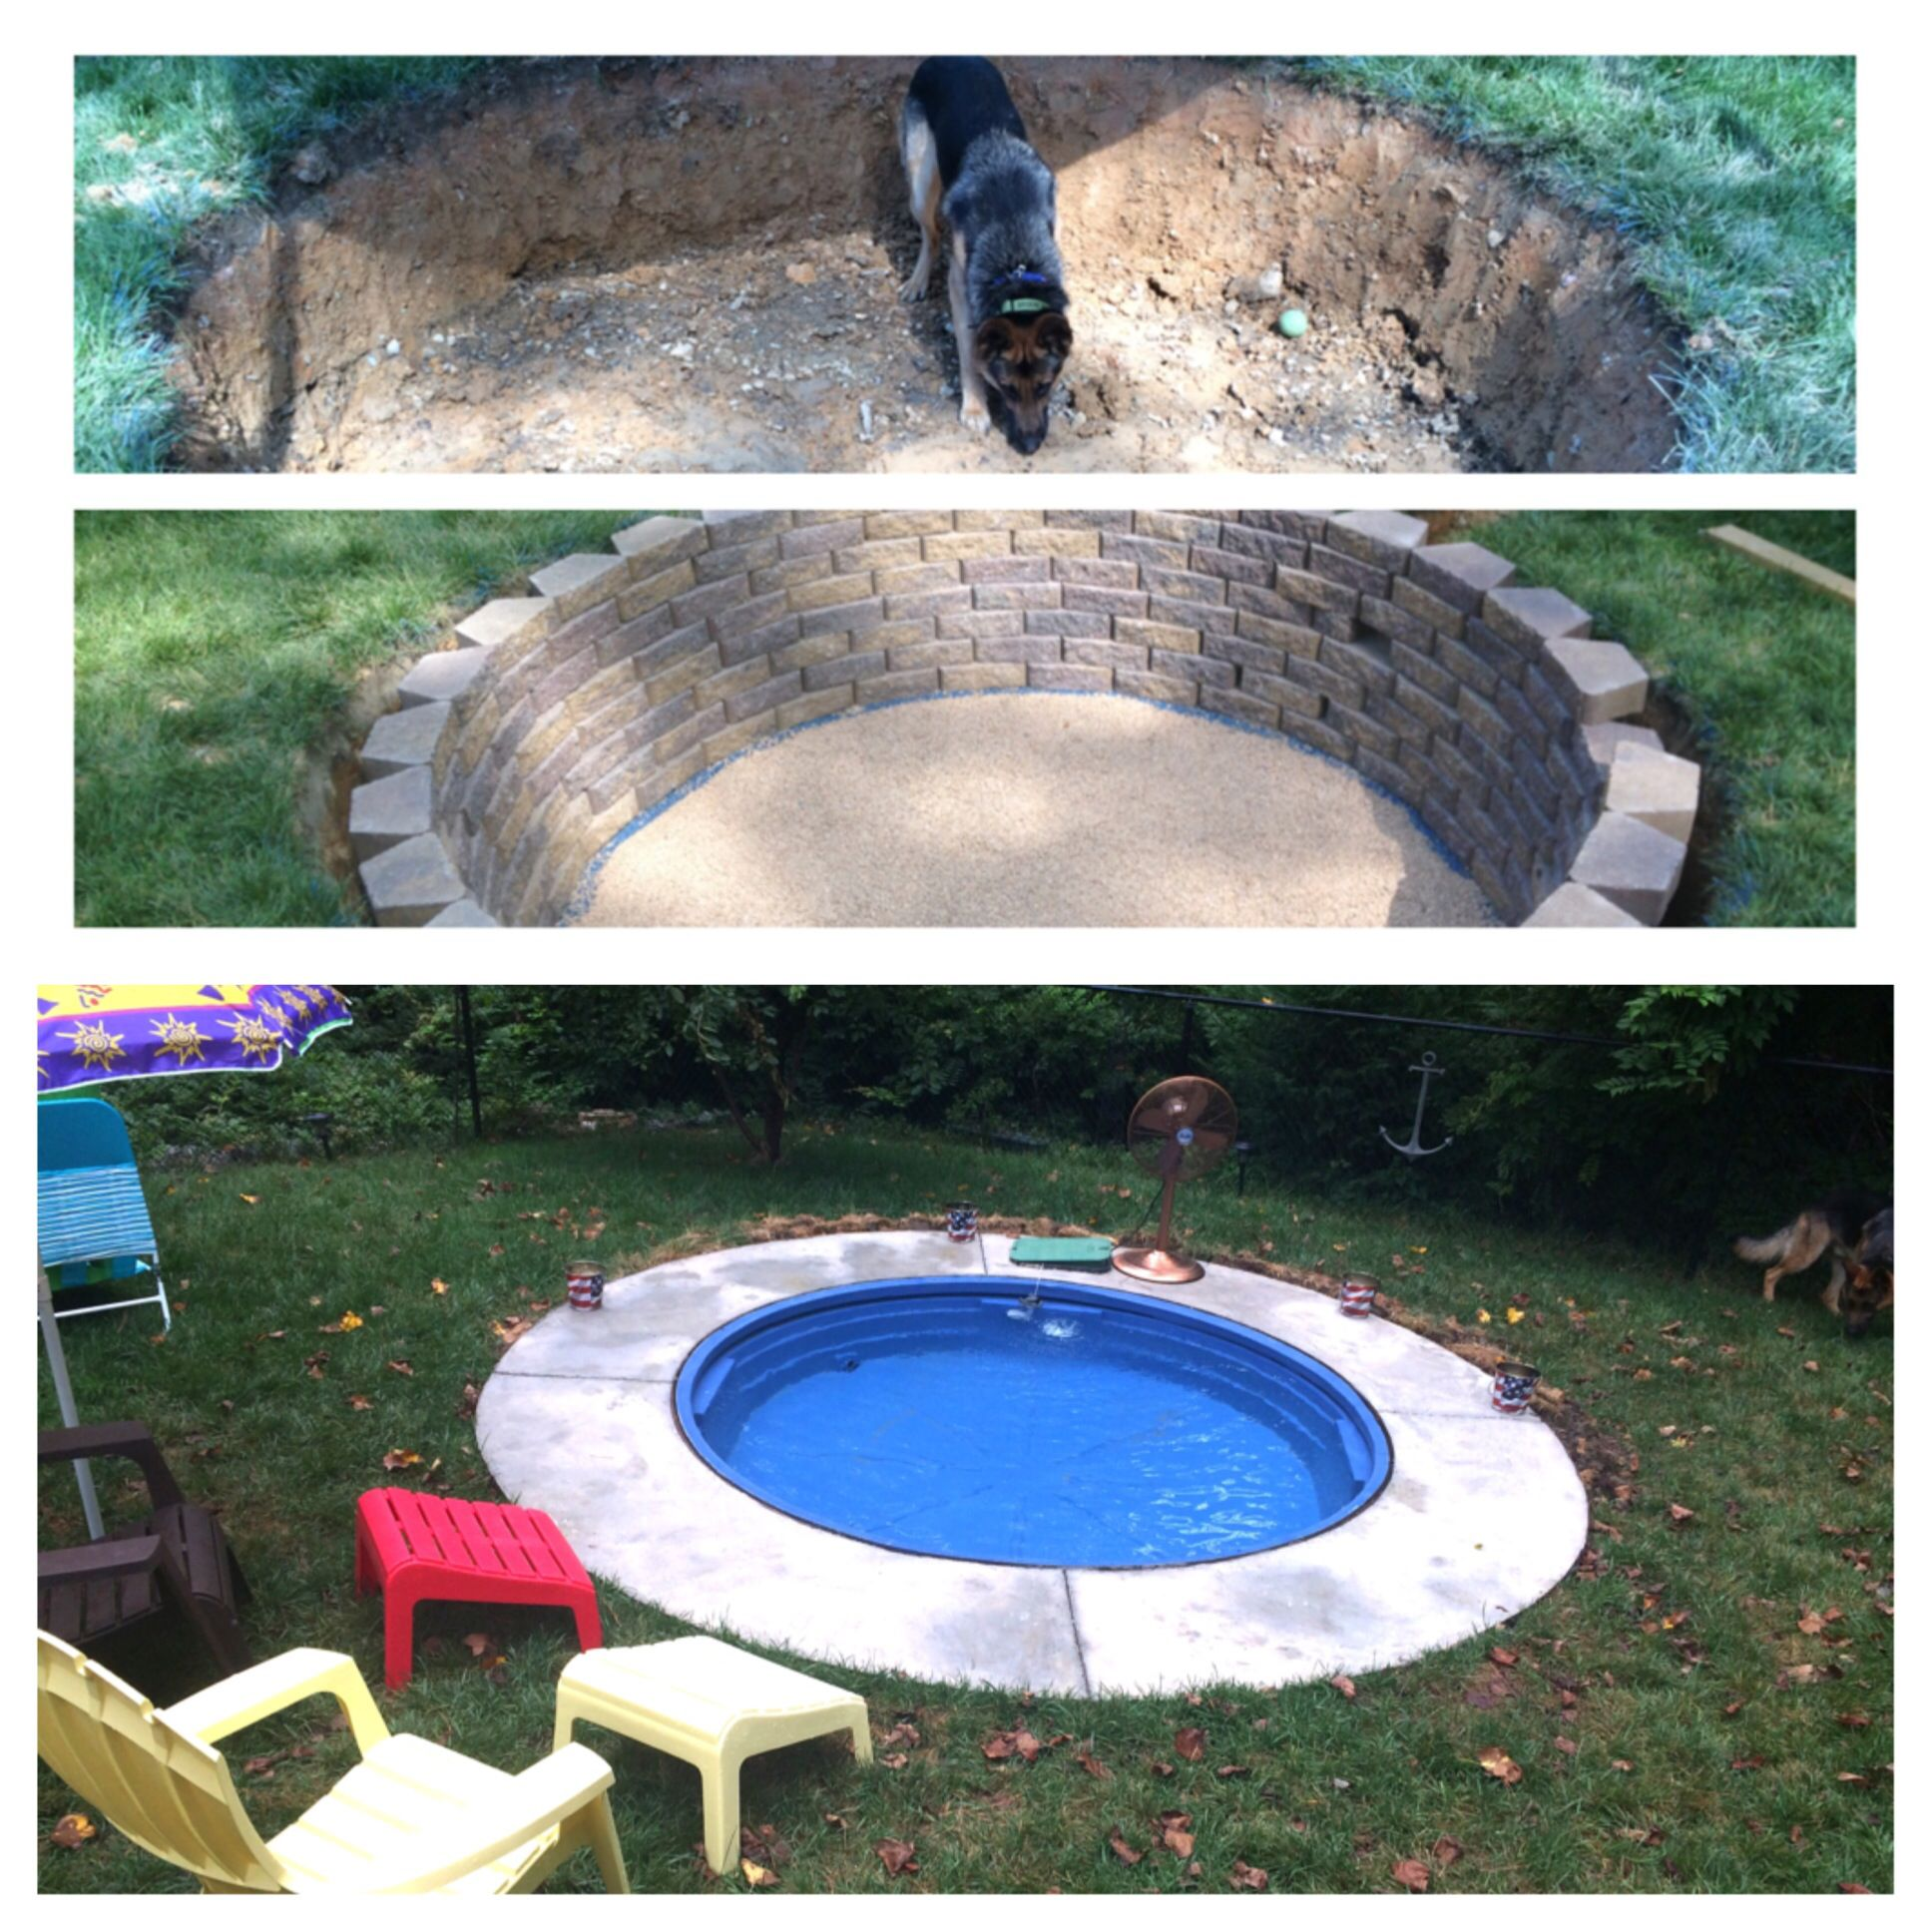 Mini pool build using a stock tank from tractor supply for Inexpensive in ground pool ideas